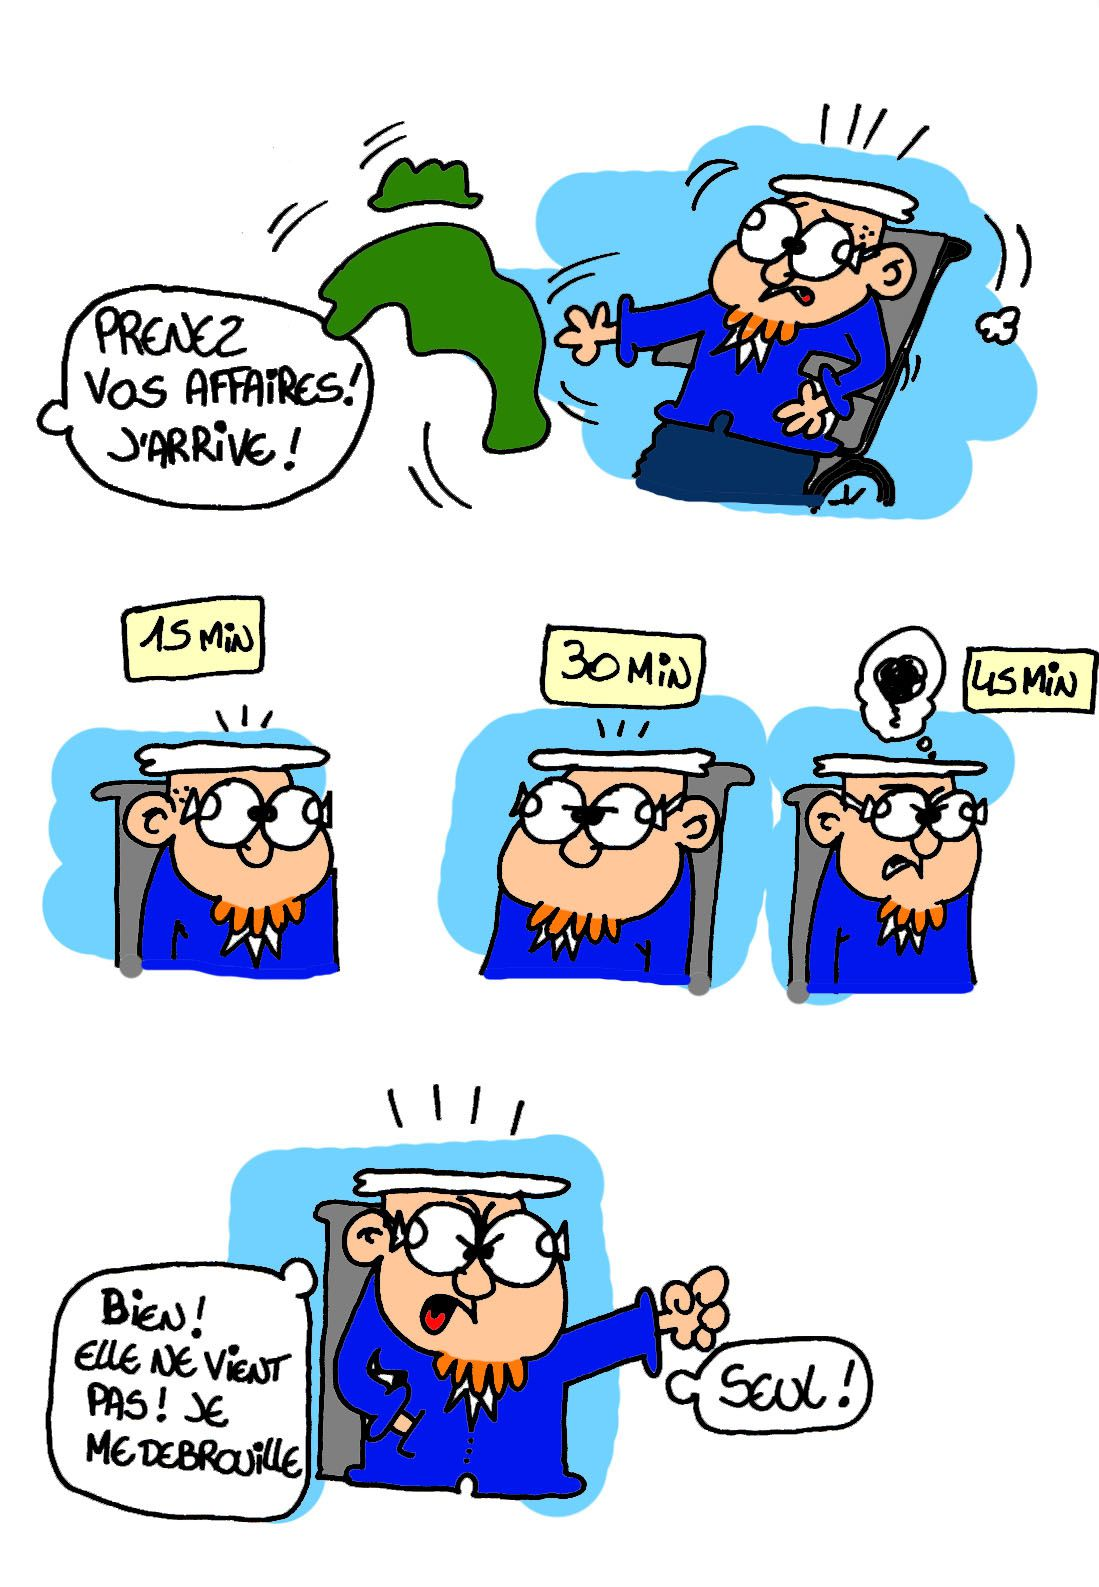 http://soskuld.over-blog.net/2014/01/douche-fiction-un-strip-en-commun-avec-patfawl.html